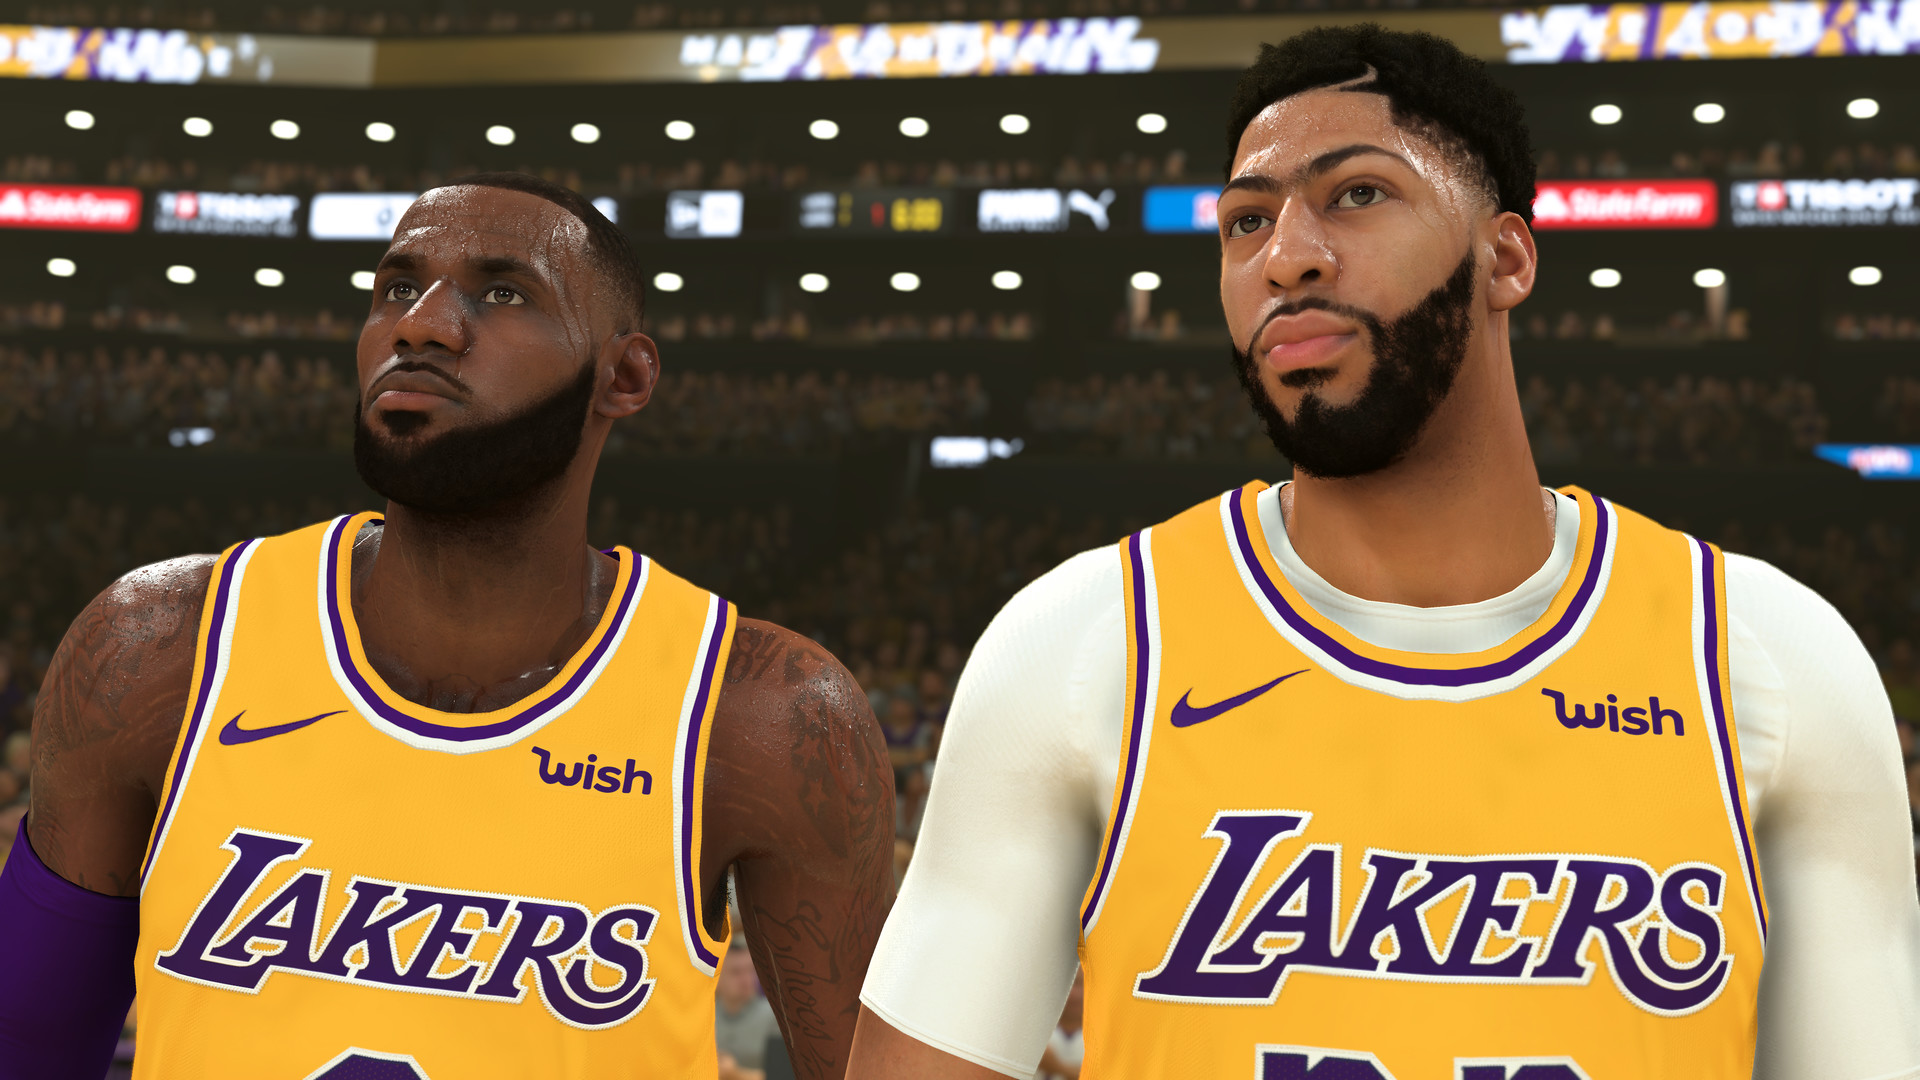 Nba 2k21 Release Date Features Basketball Game To Launch With Xbox Series X Console